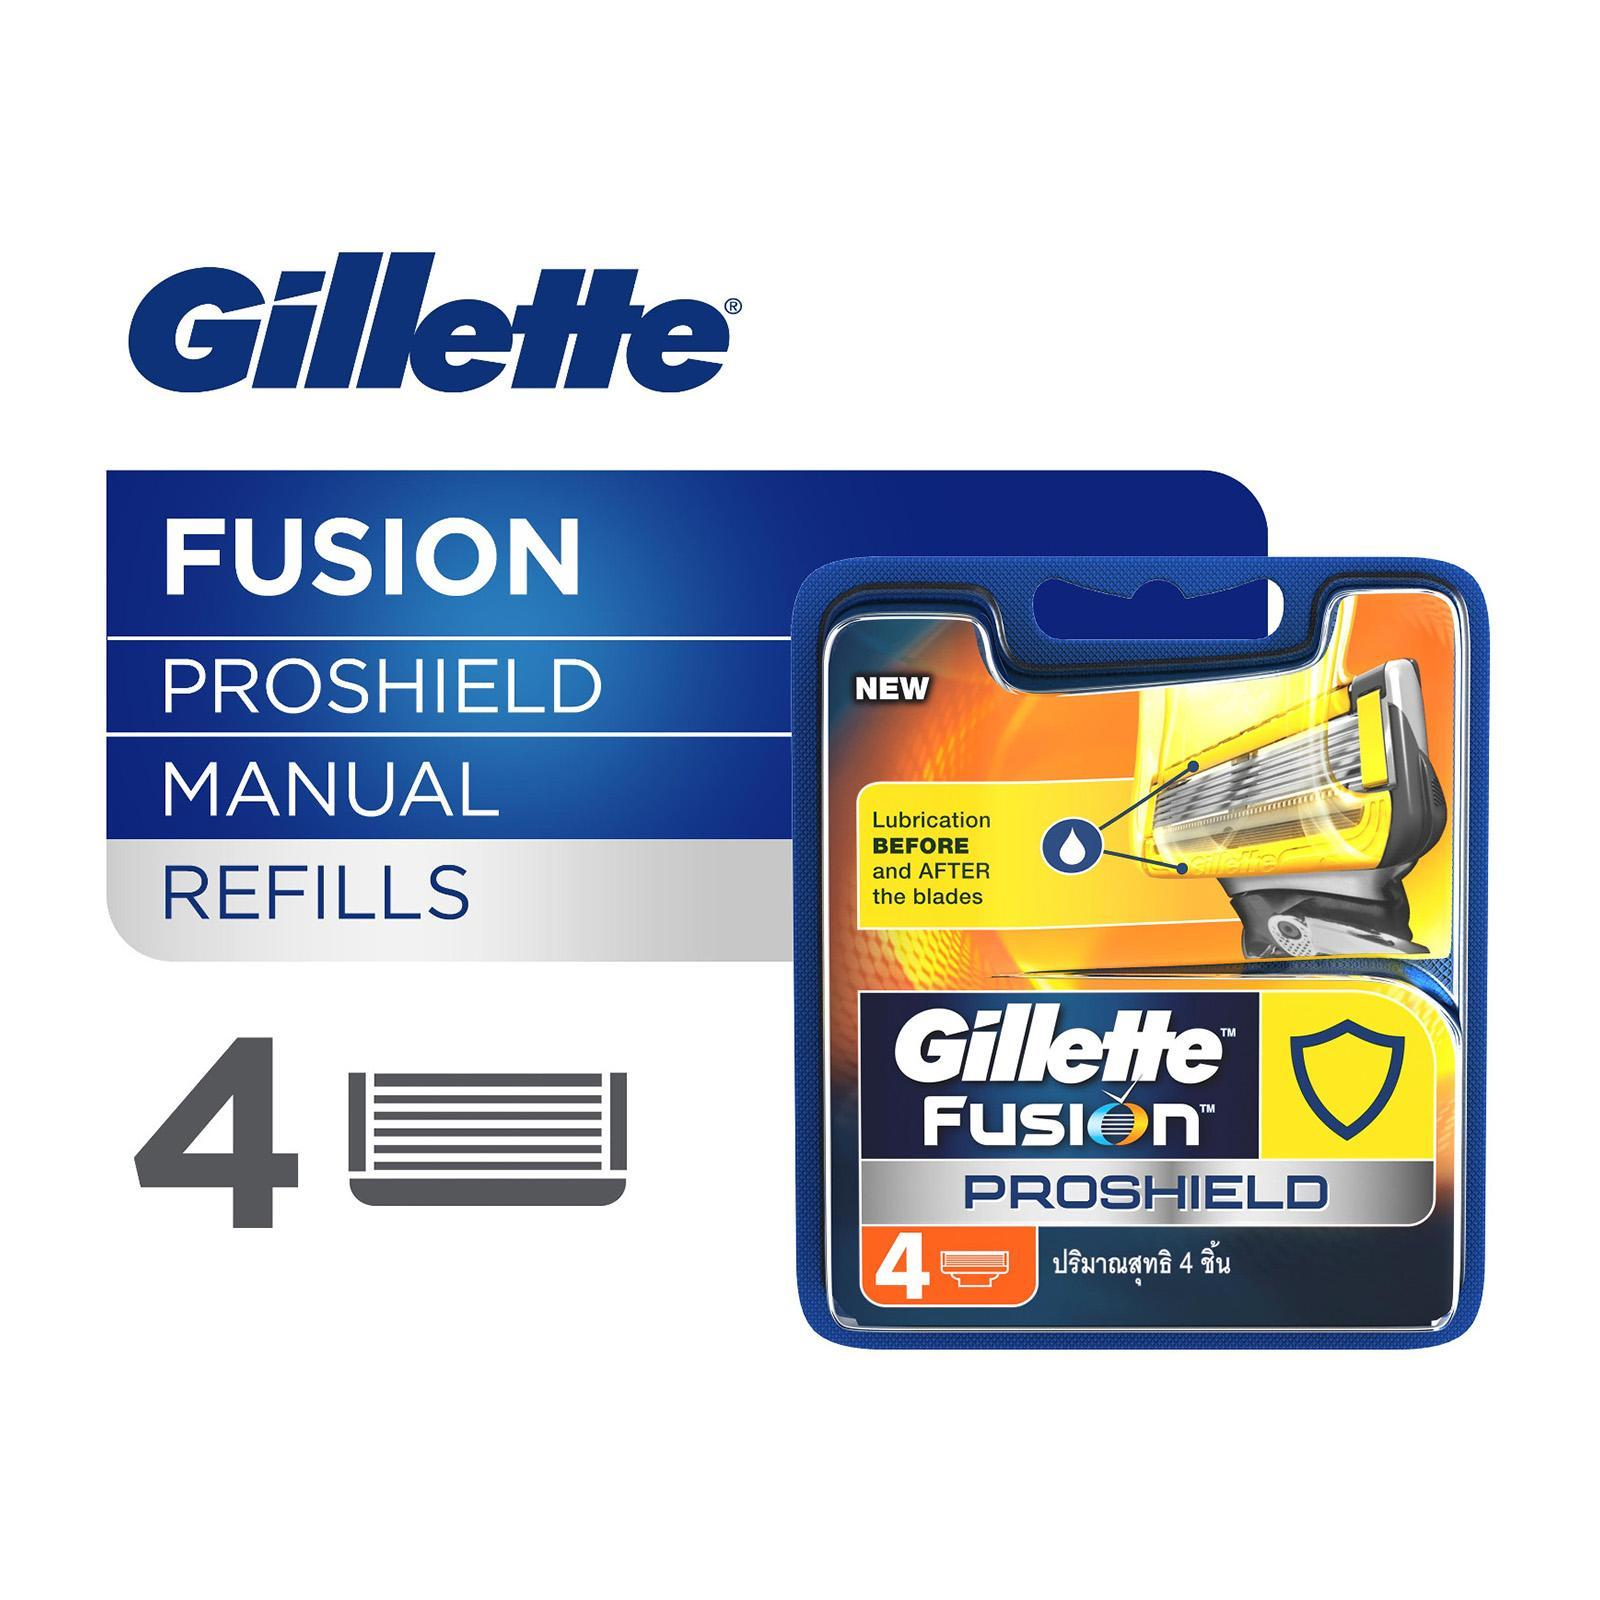 Gillette Fusion Proshield Manual Razor Cartridge Refills - 4PCS